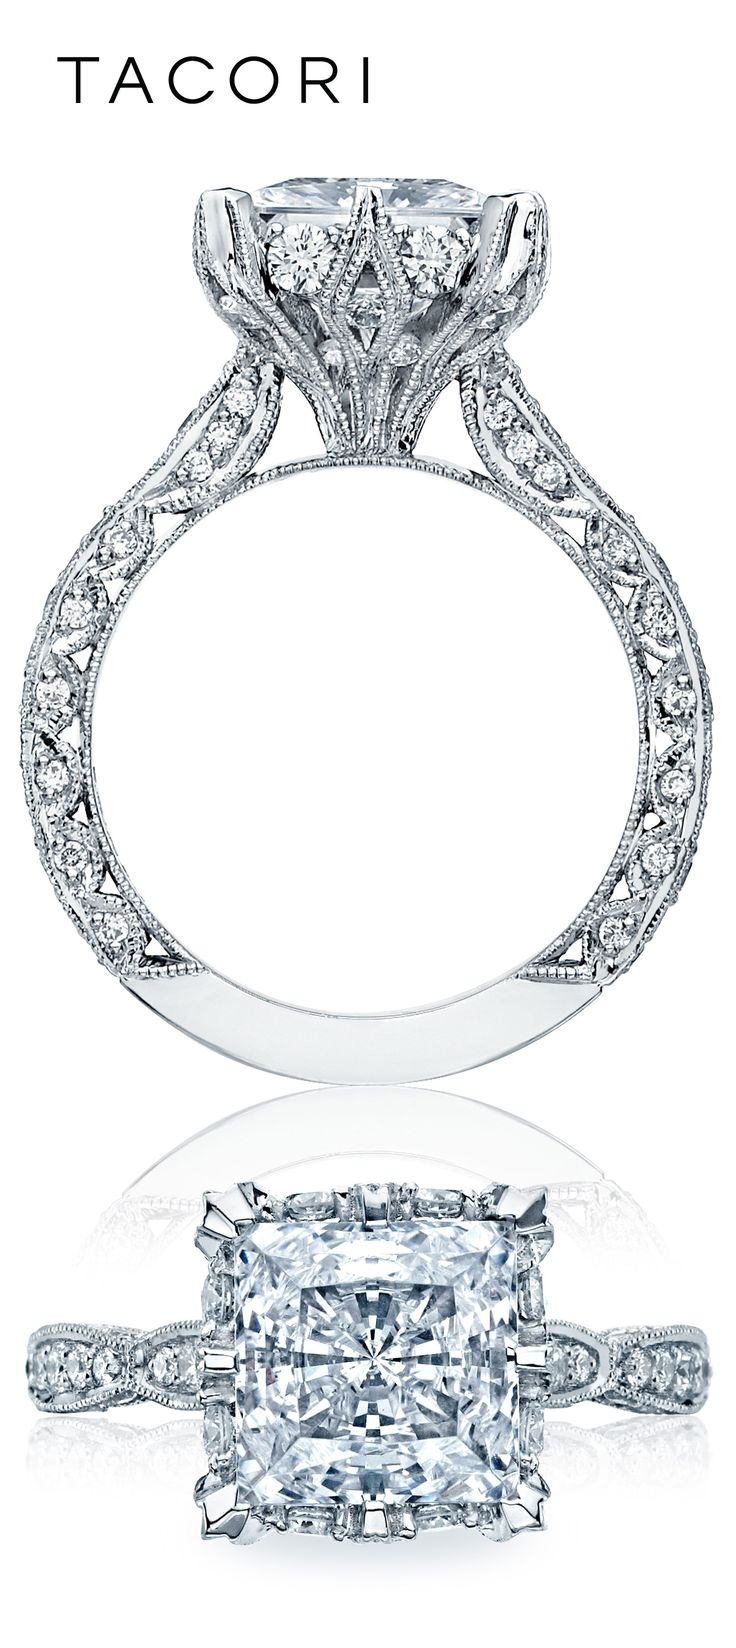 It is all in the details! Marquis shaped designs create the ceiling on this unique princess cut stunning beauty.